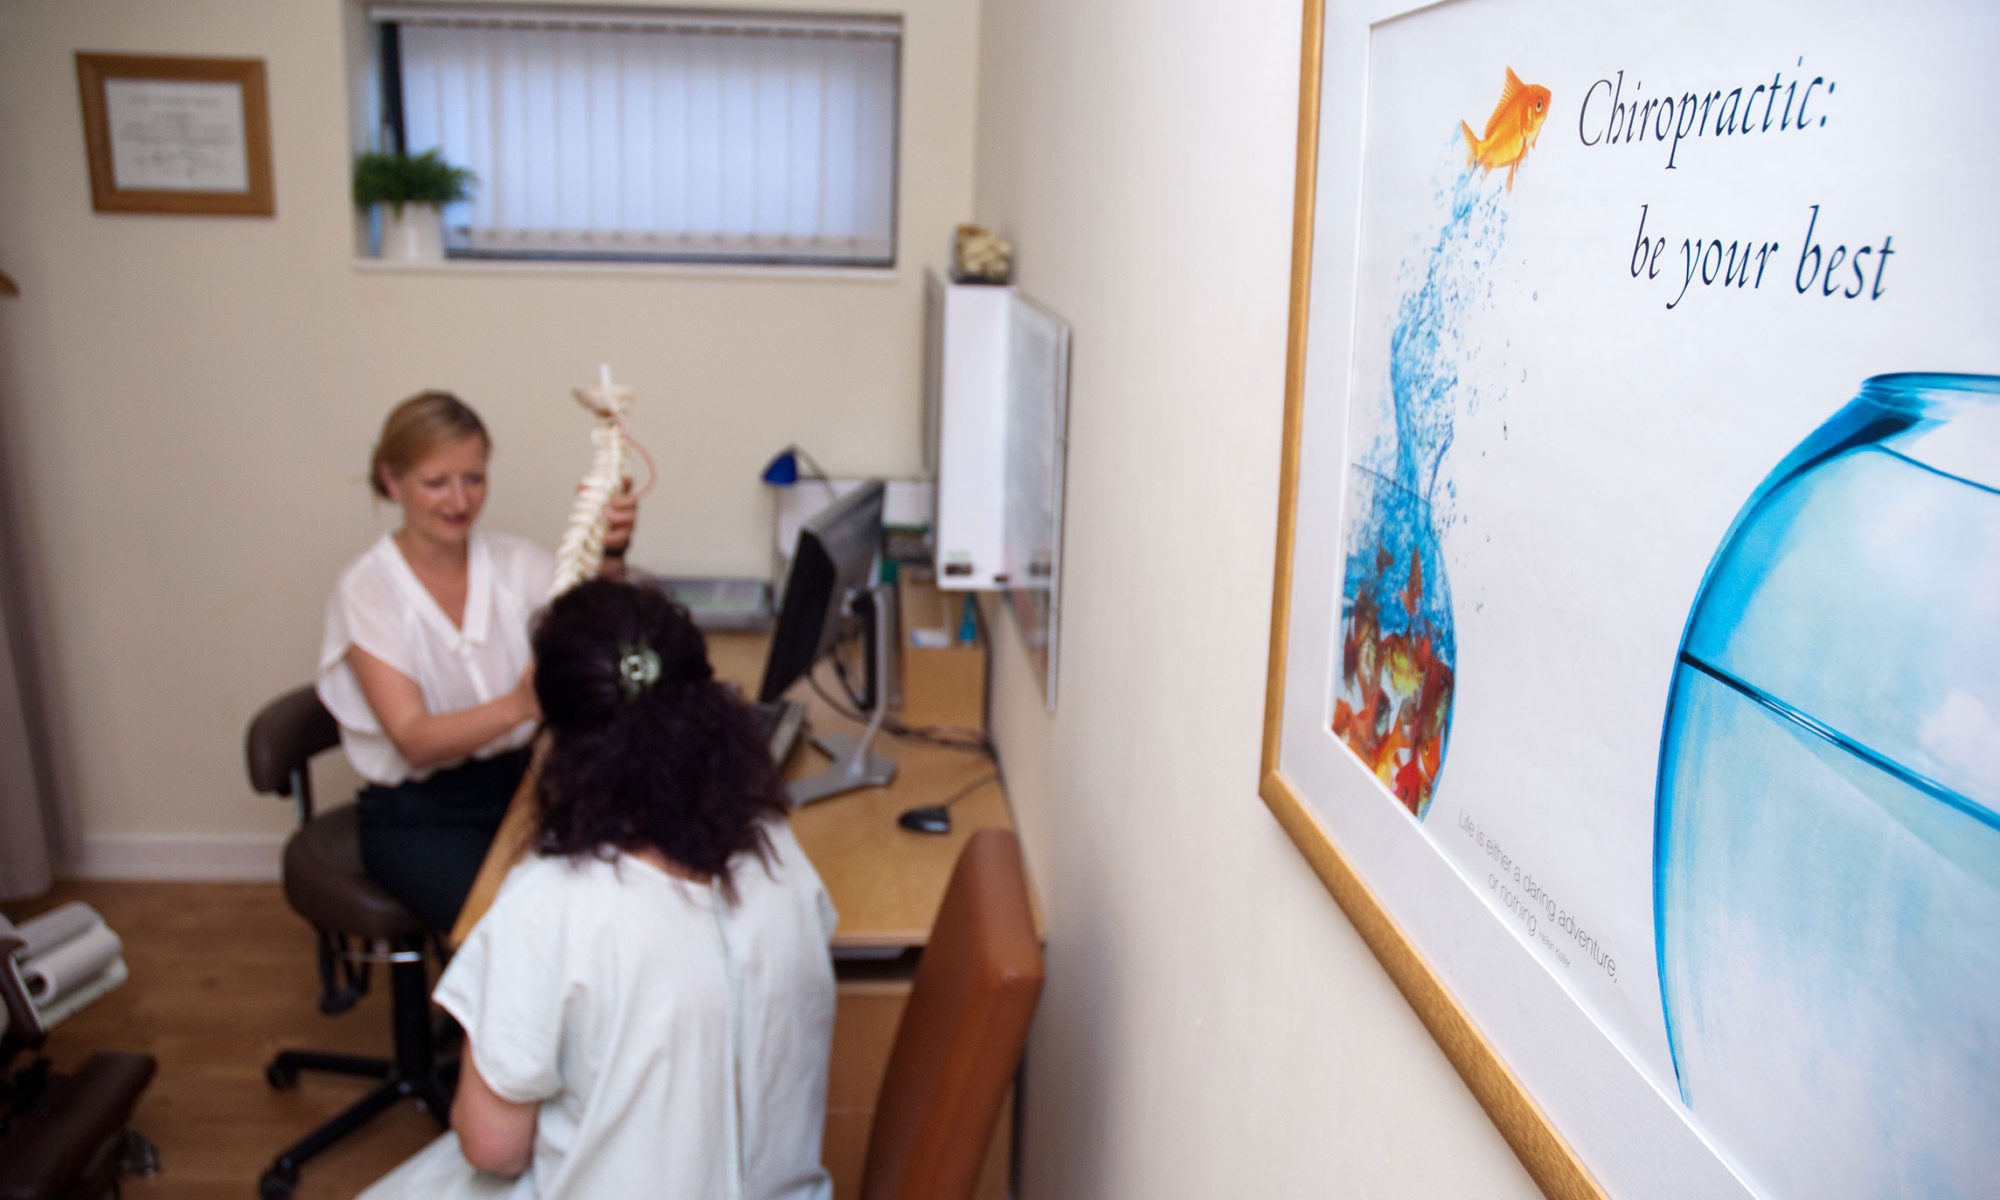 advice for everyday living from chiropractors in Cardiff